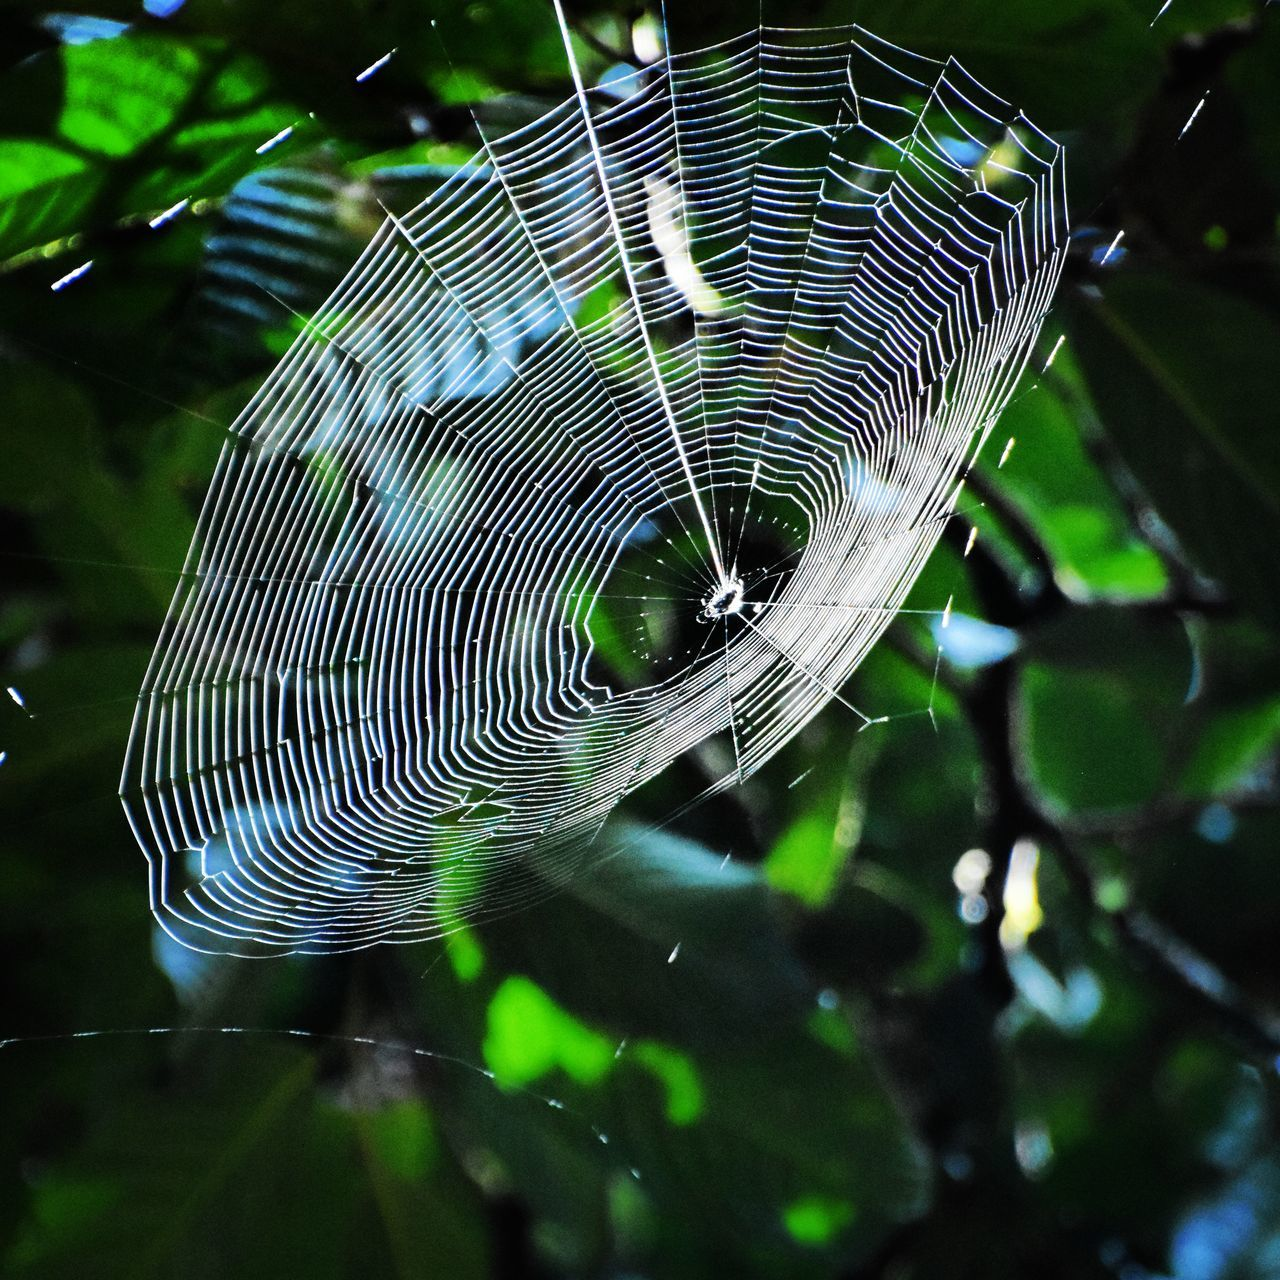 Spider Nature Nature_perfection Danum Valley Spider Web Spider Sabah Below The Wind Sabah Borneo Borneo Danum Valley, Borneo, Sabah, Rainforest Wildlife & Nature Nature, Naturelovers Wilderness Nature_collection Nature Photography Photography Photooftheday Wildlifephotography Wildlife Photography DanumValley Photography In Motion Beauty In Nature Rainforest Sabah Malaysia Danum